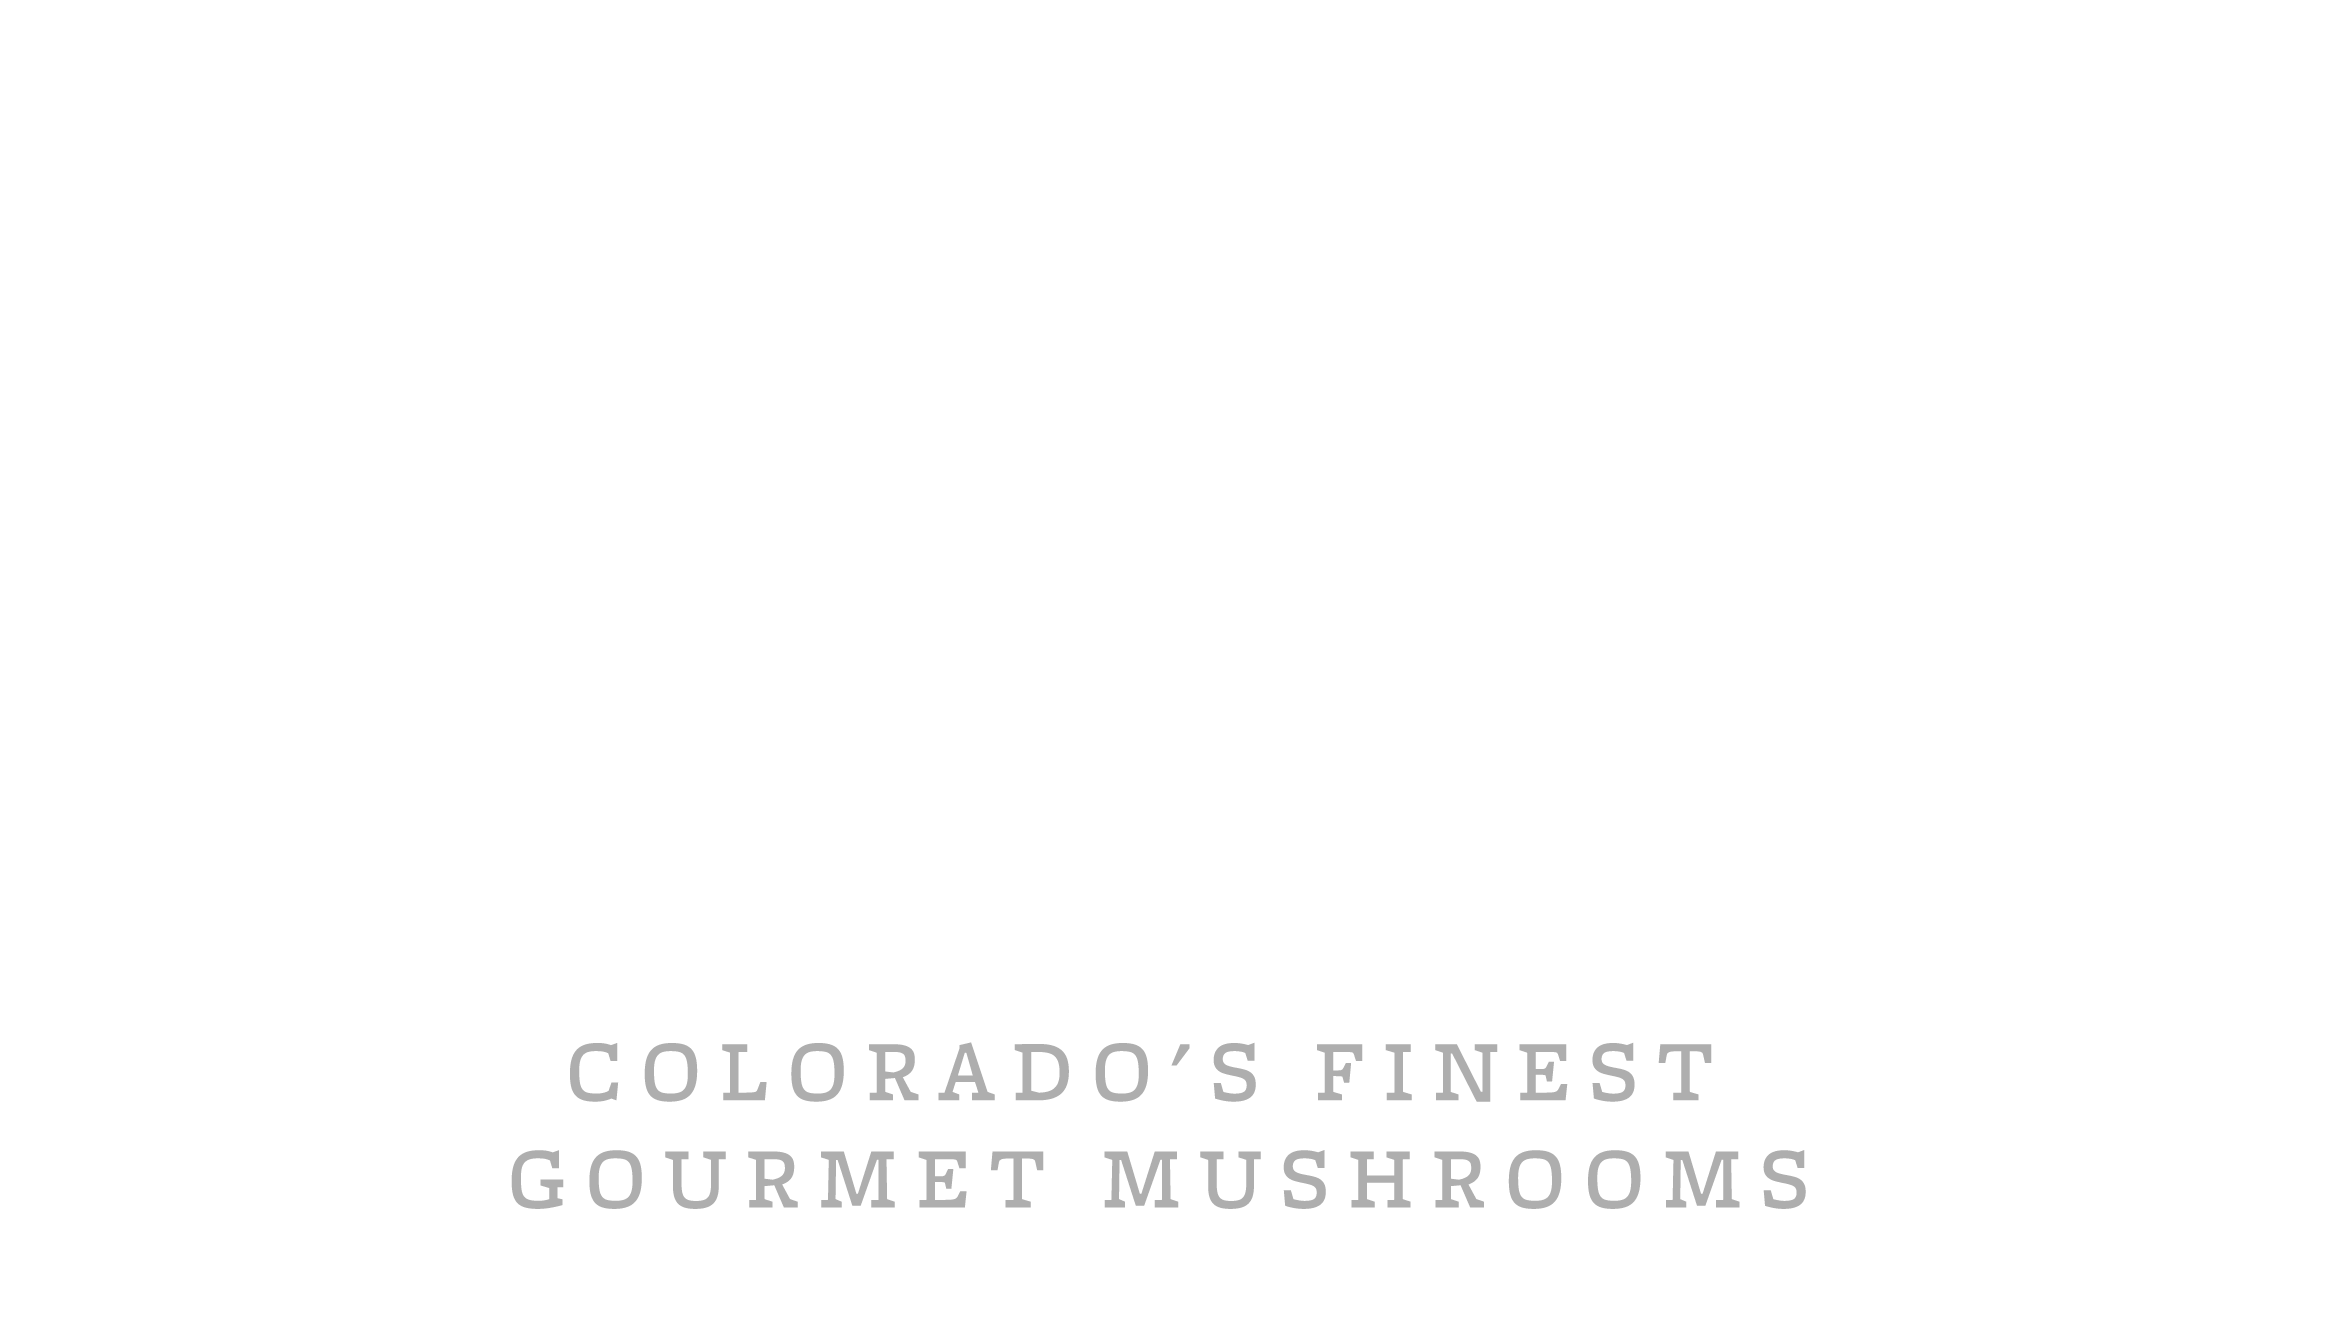 Mile High Funghi | Colorado's Finest Gourmet Mushrooms